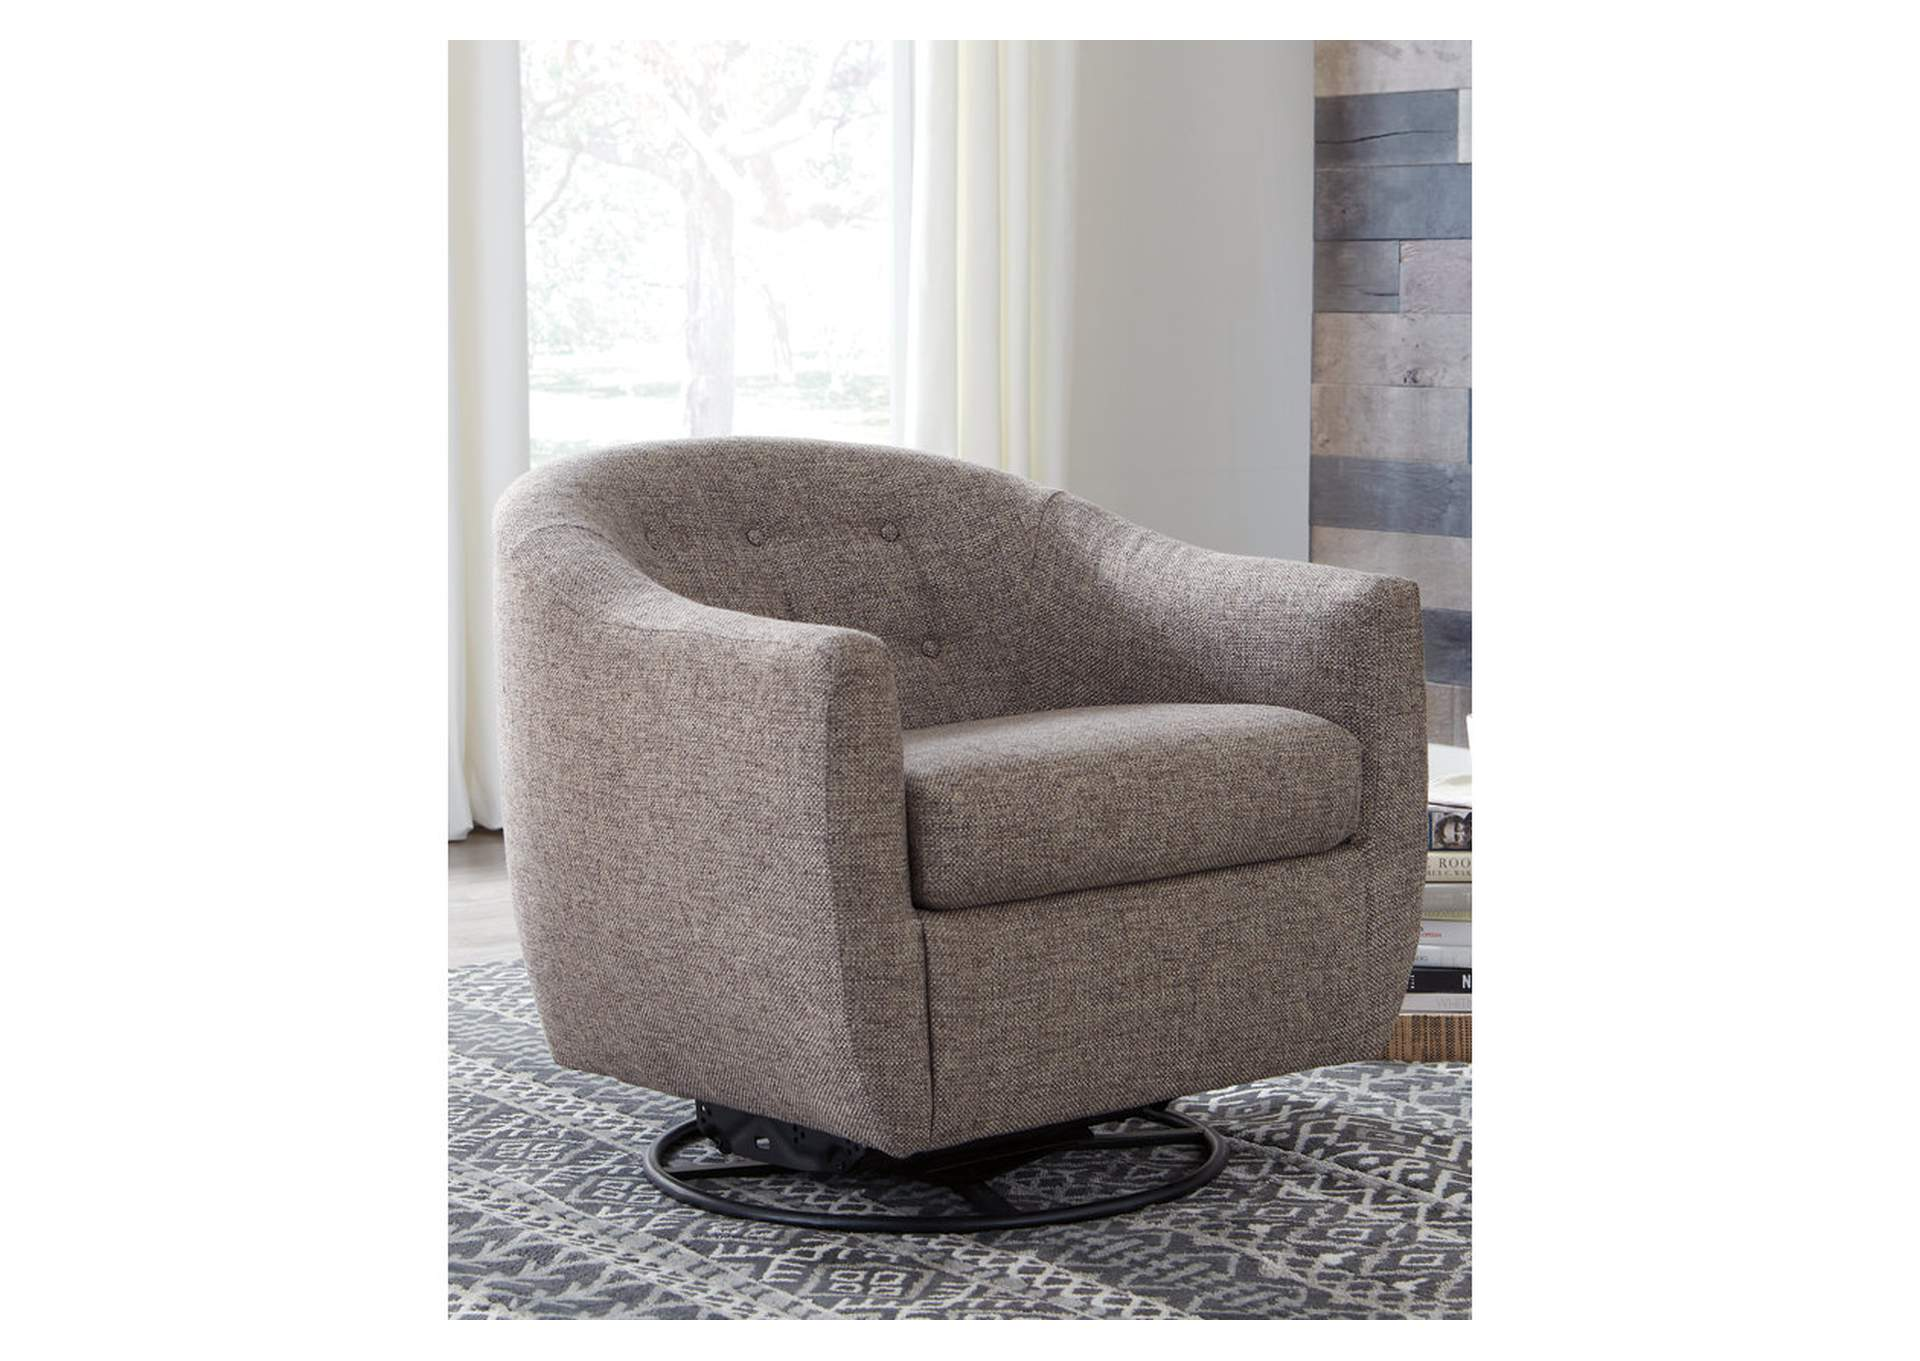 Upshur Accent Chair,Signature Design By Ashley